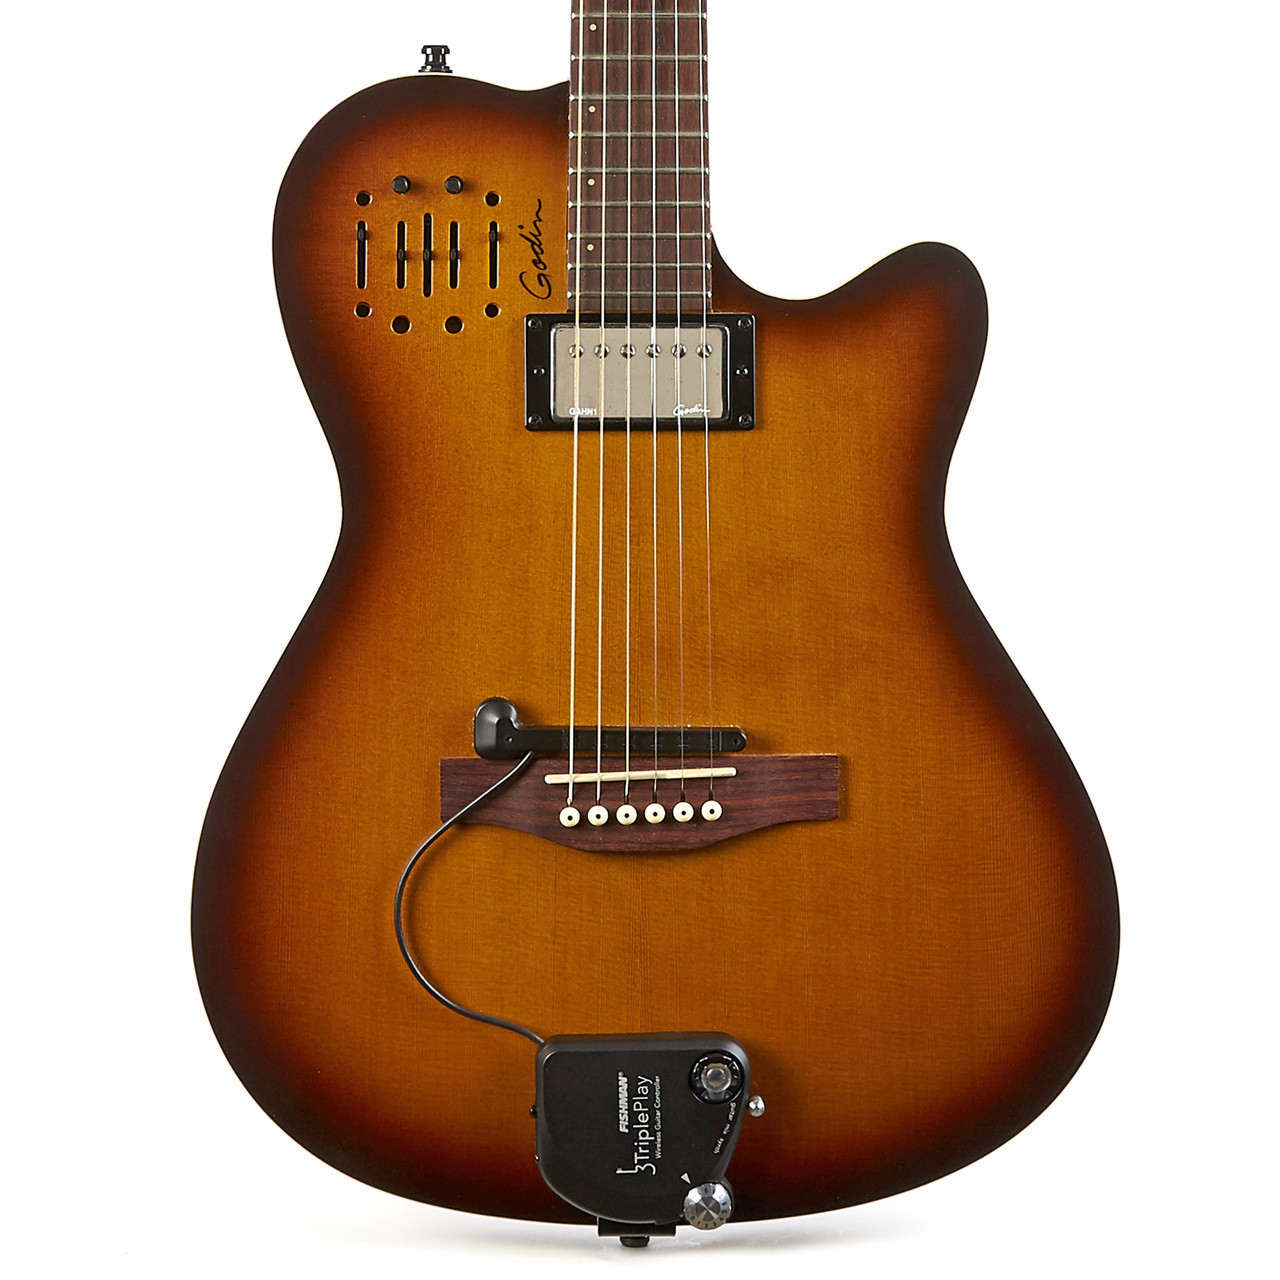 Inventive Epiphone Masterbilt Century Deluxe-never Used-showroom Condition Guitars & Basses Musical Instruments & Gear